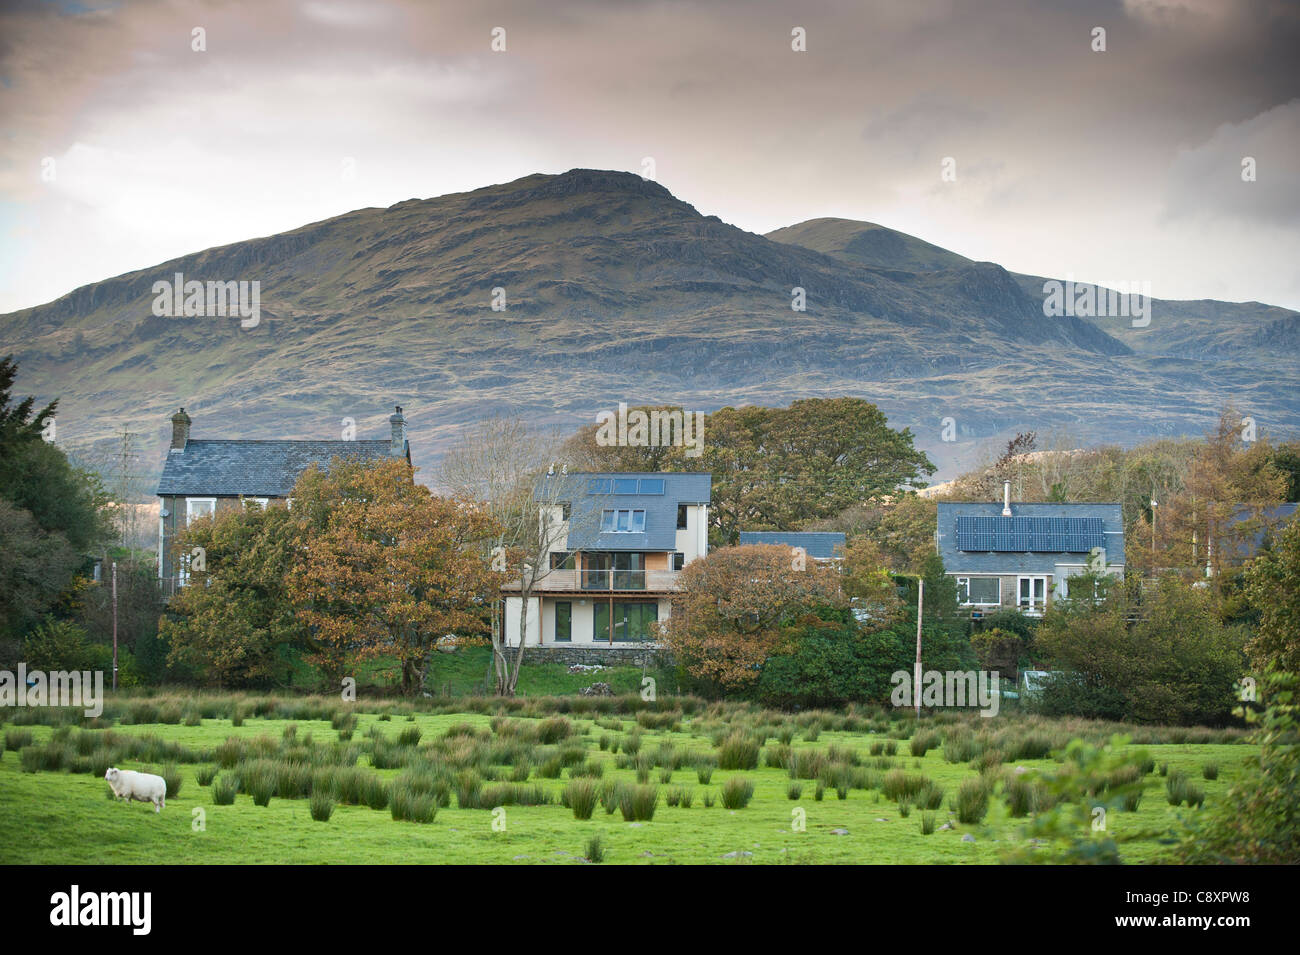 Moelwyn Bach And Moelwyn Mawr Mountains Behind Houses In